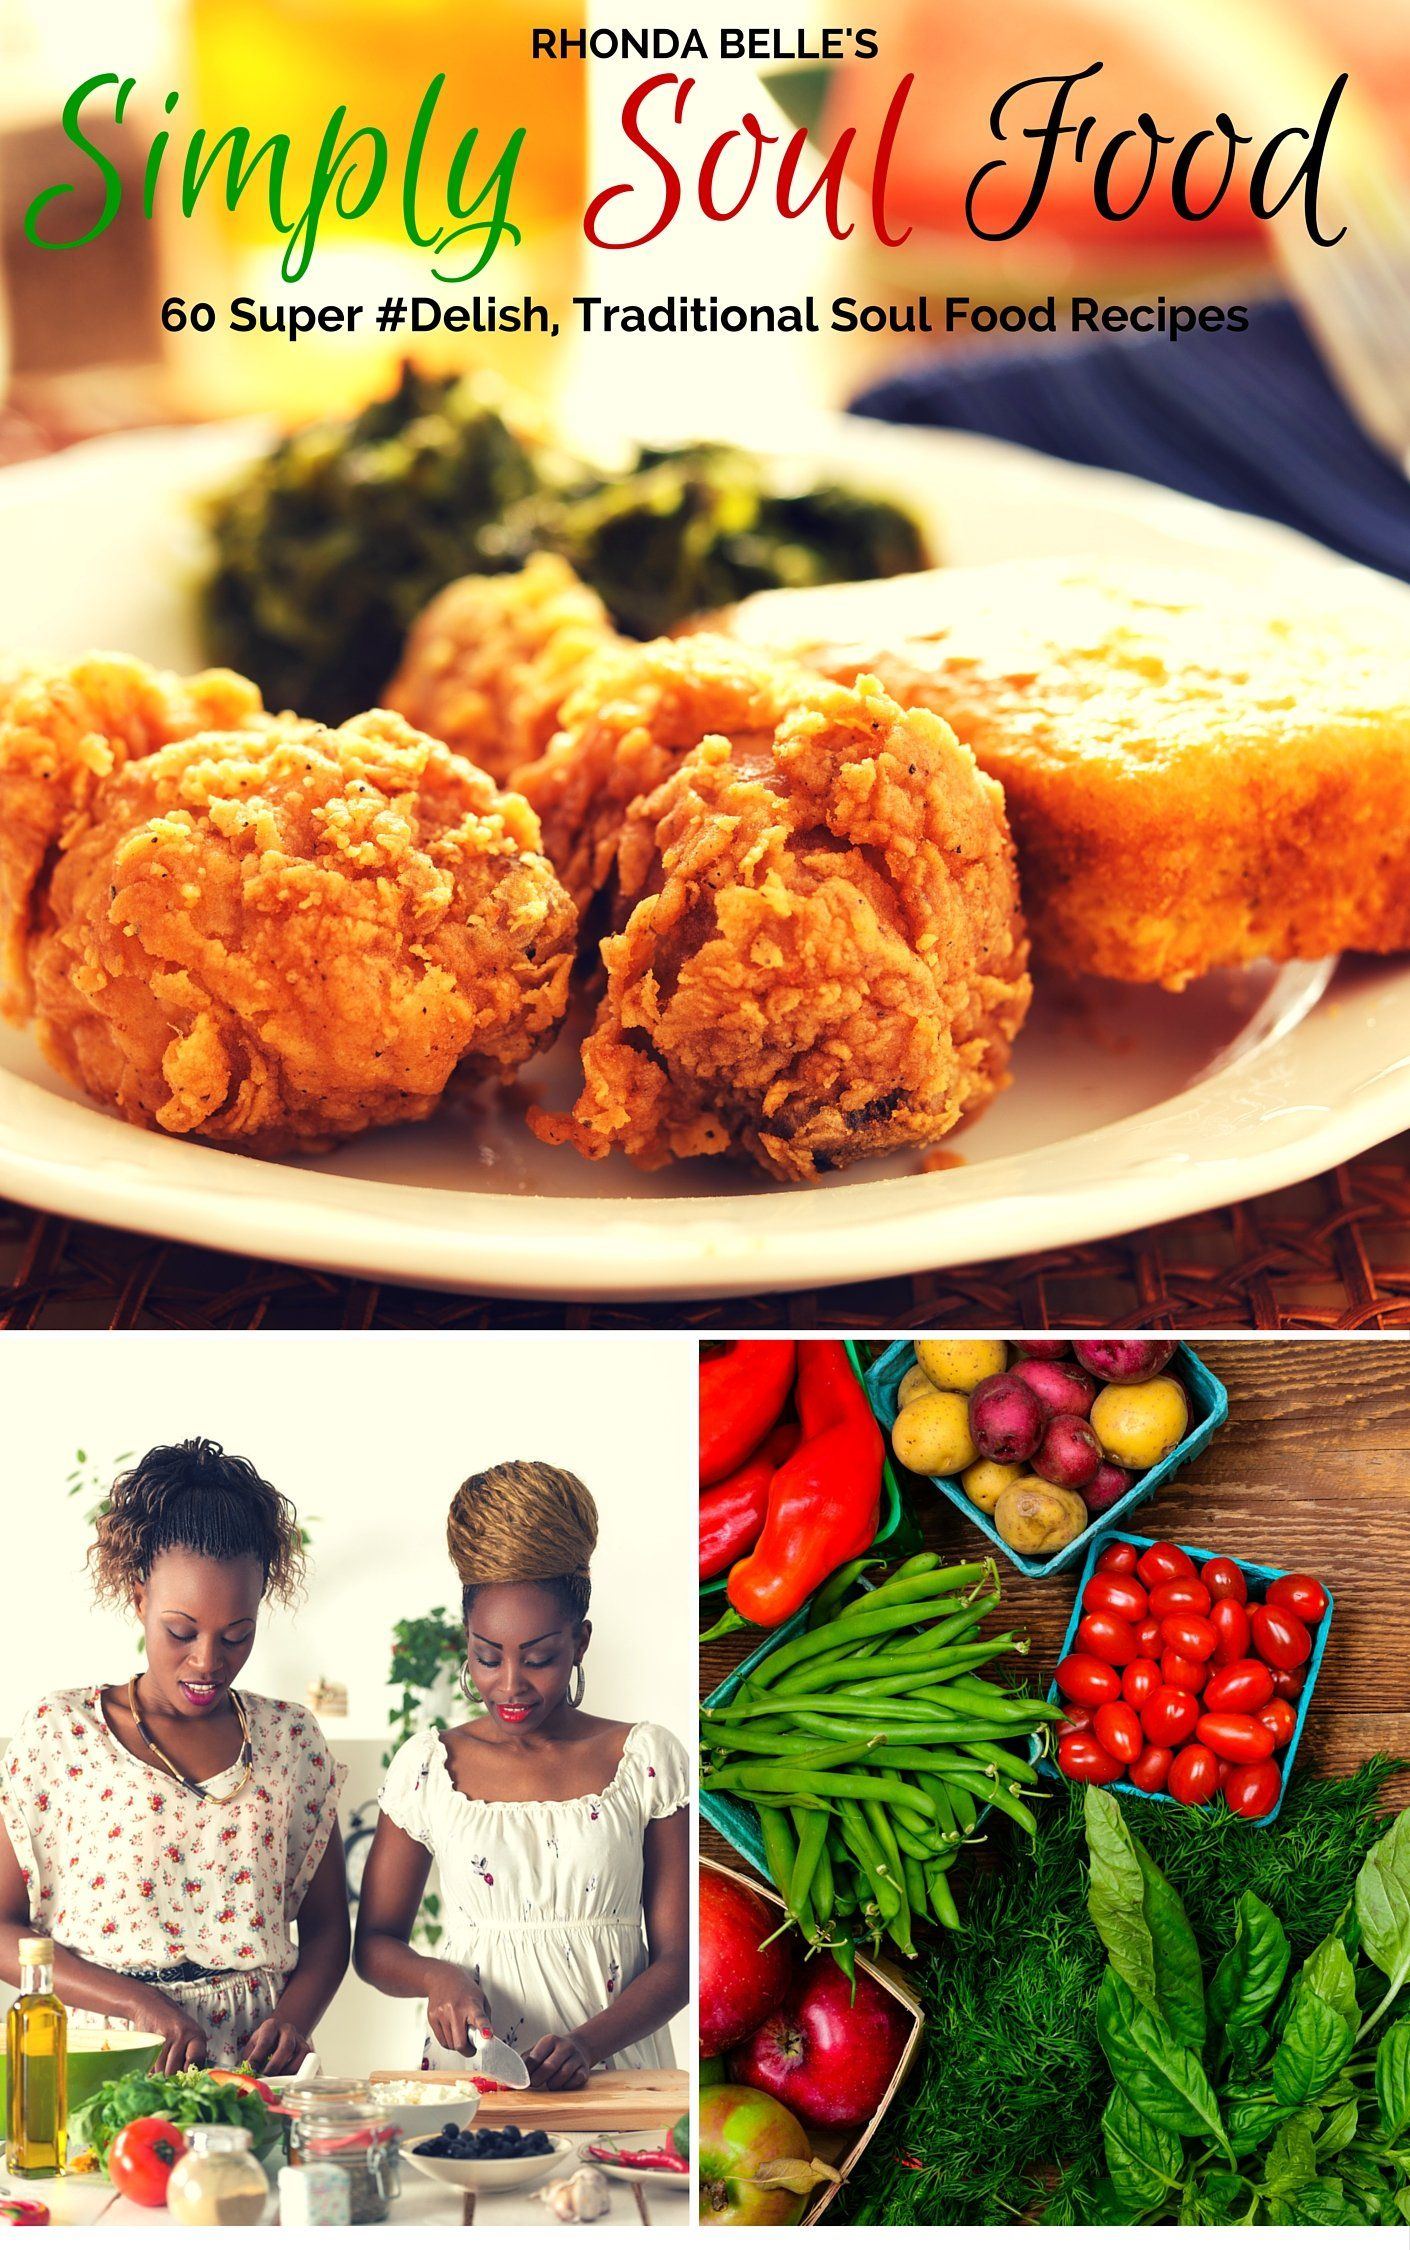 Simply soul food 60 super delish traditional soul food recipes 60 simply soul food 60 super delish traditional soul food recipes 60 super recipes book 7 forumfinder Image collections